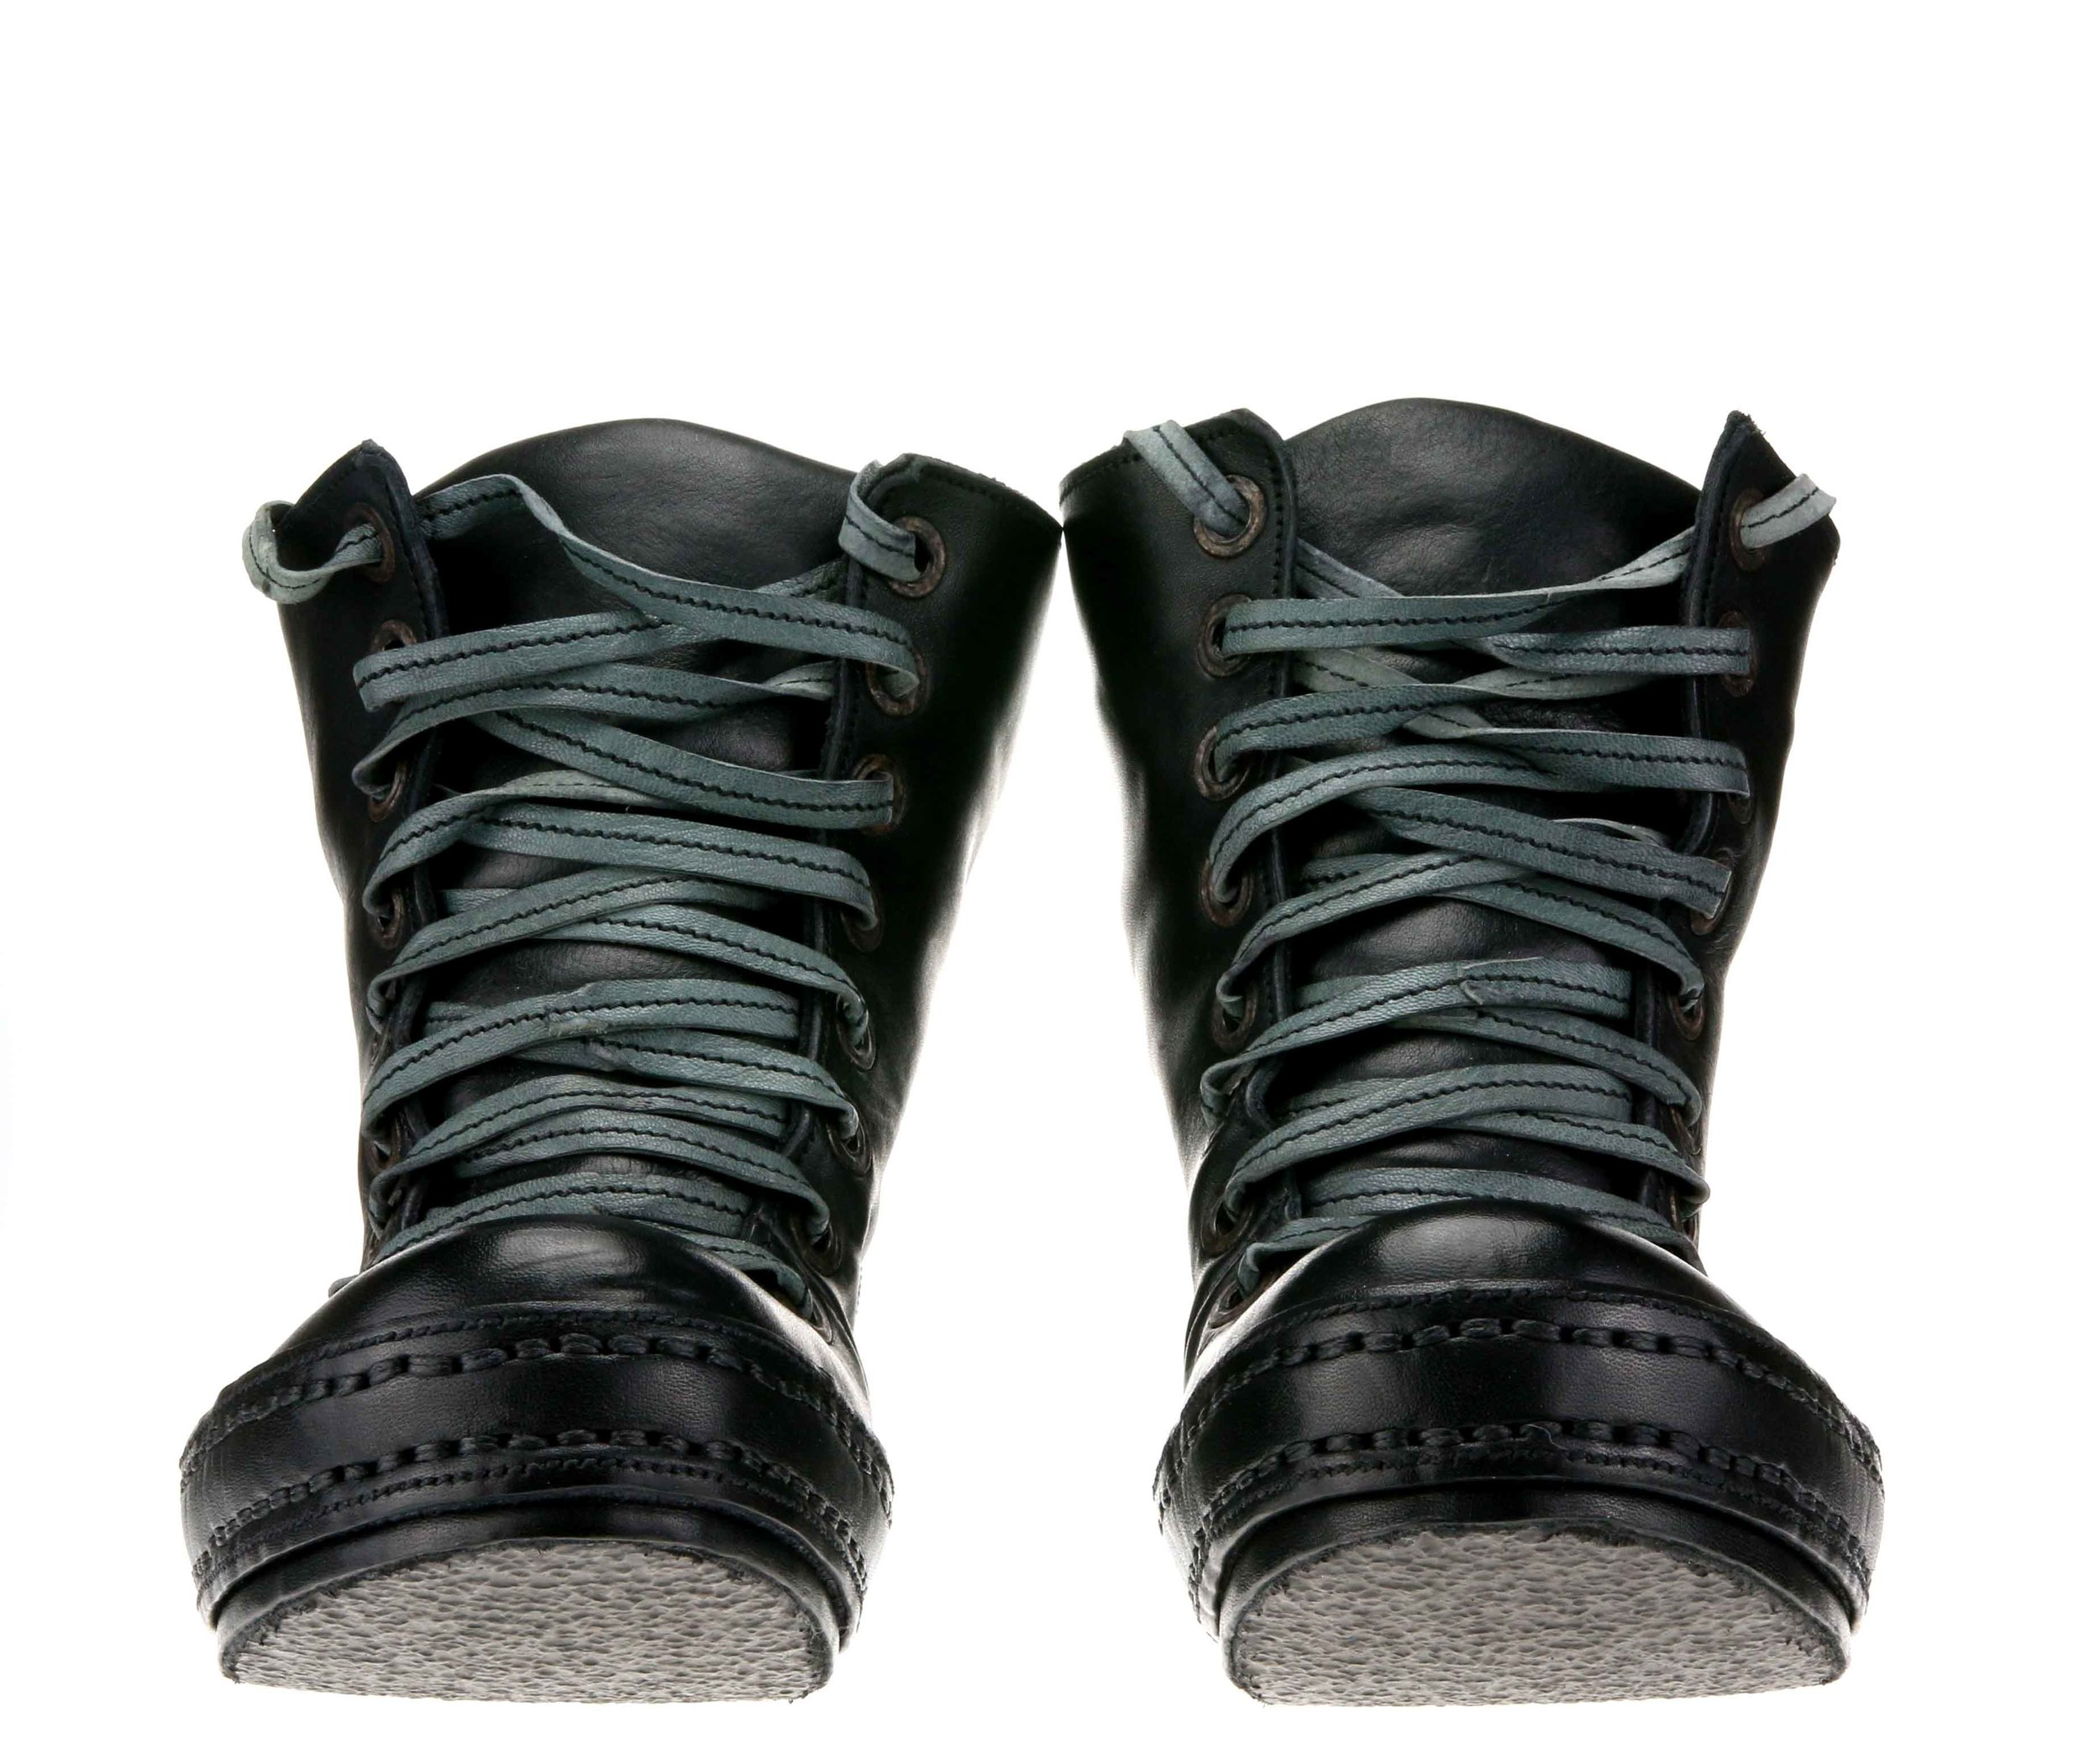 8Hole Sk8 Black Double Front.jpg